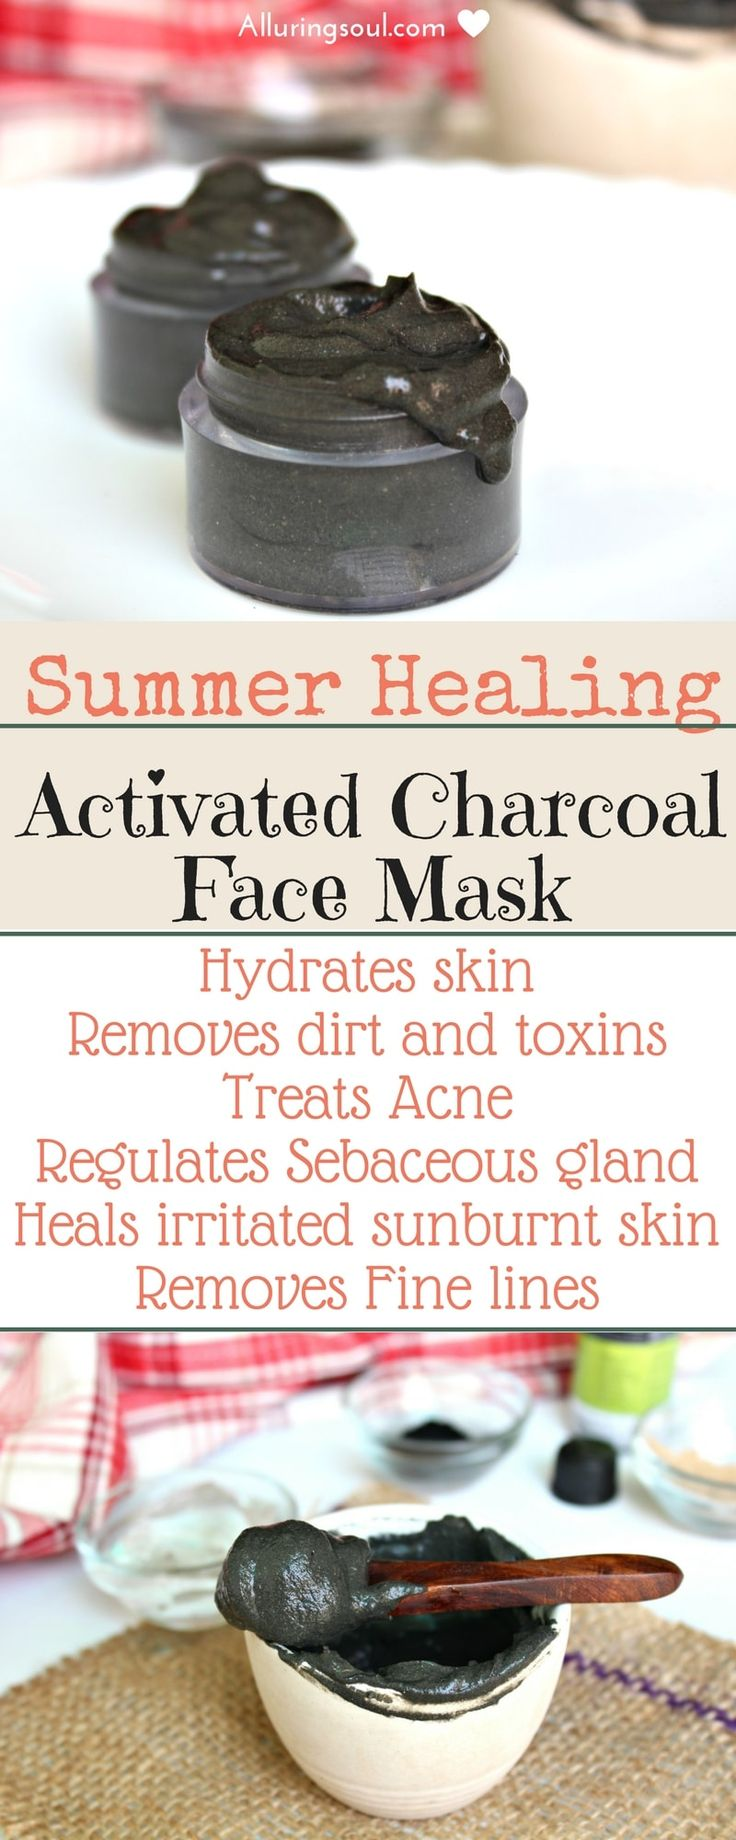 charcoal face mask hydrates skin, removes dirt and unclogs pores and soothes sun irritated skin.